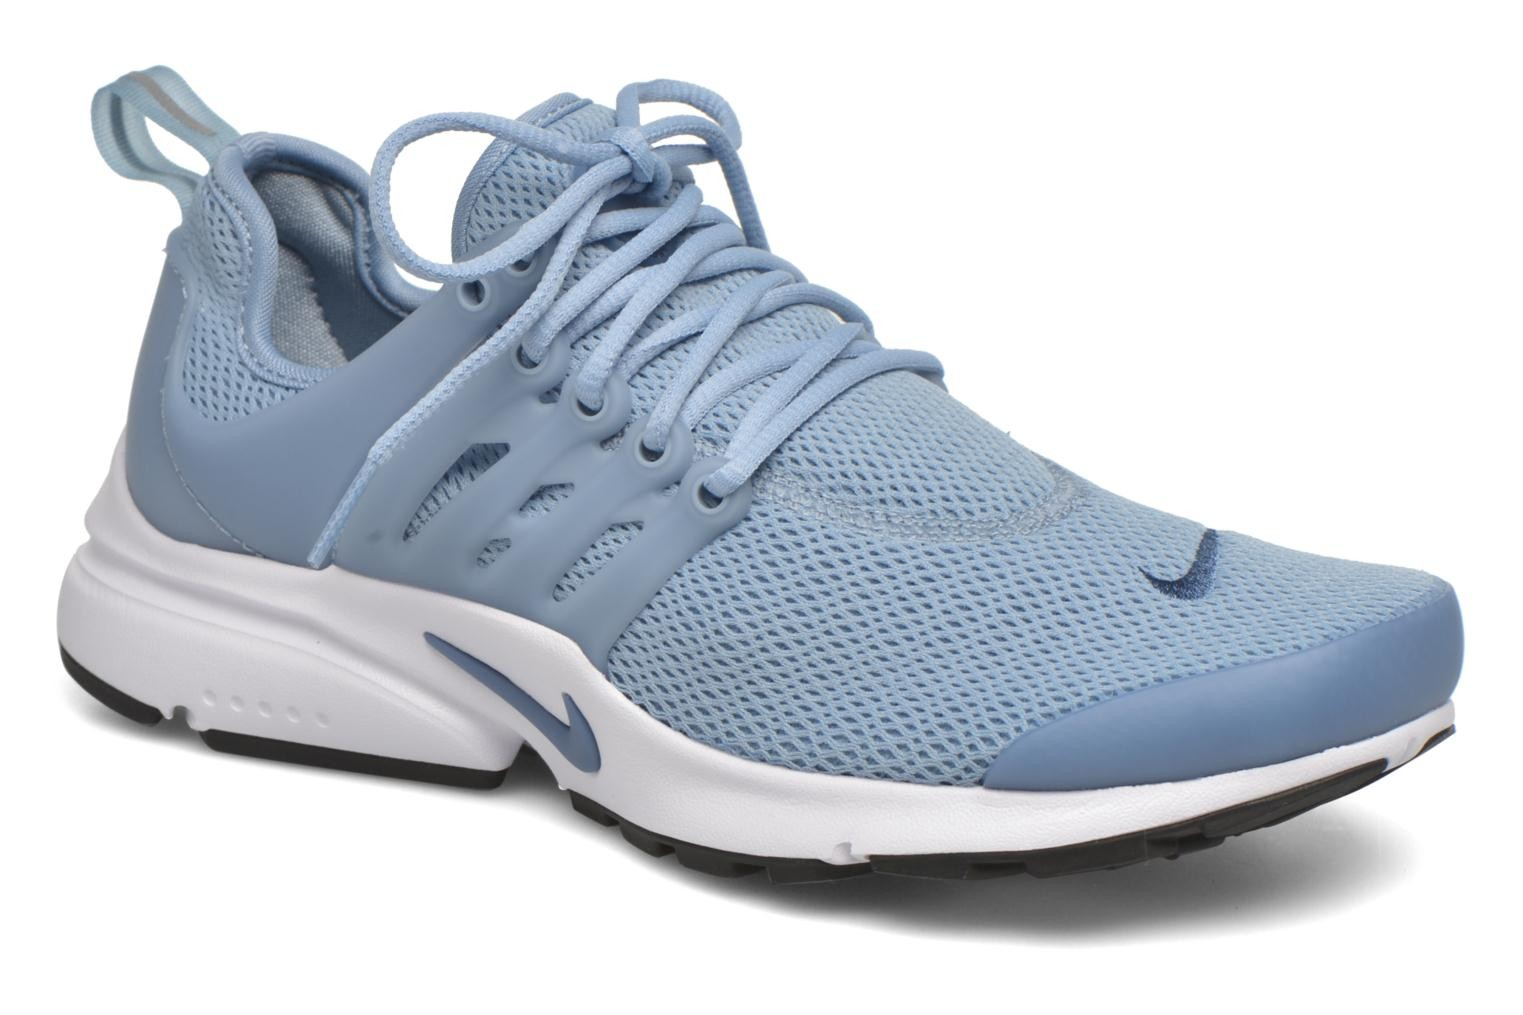 reputable site d6c12 8cee1 nike air presto femme bleu